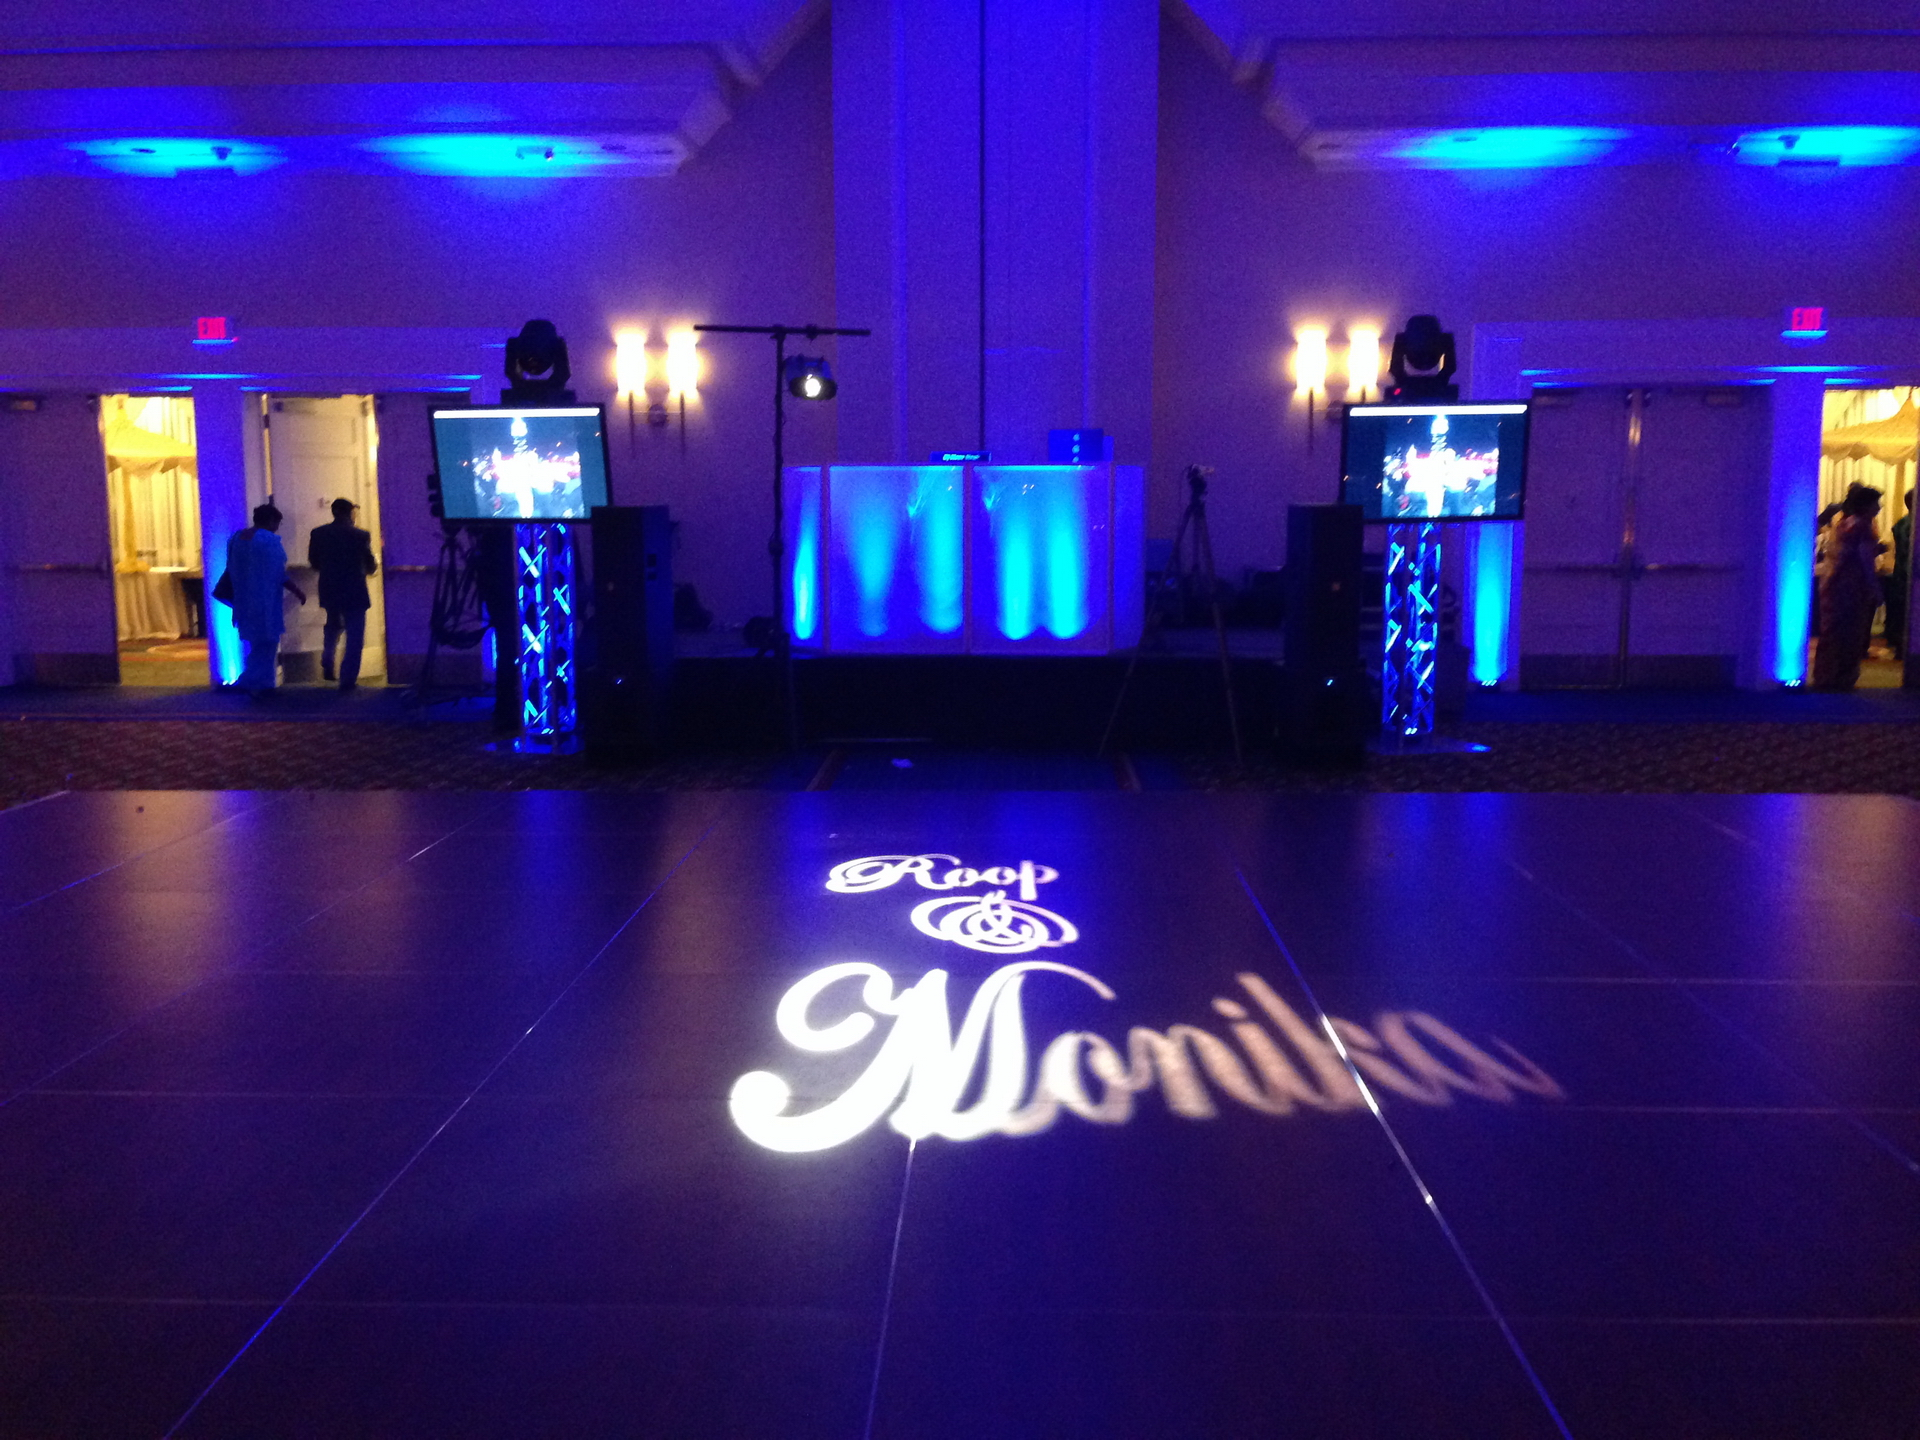 Dj Monu Lightning a screens 3